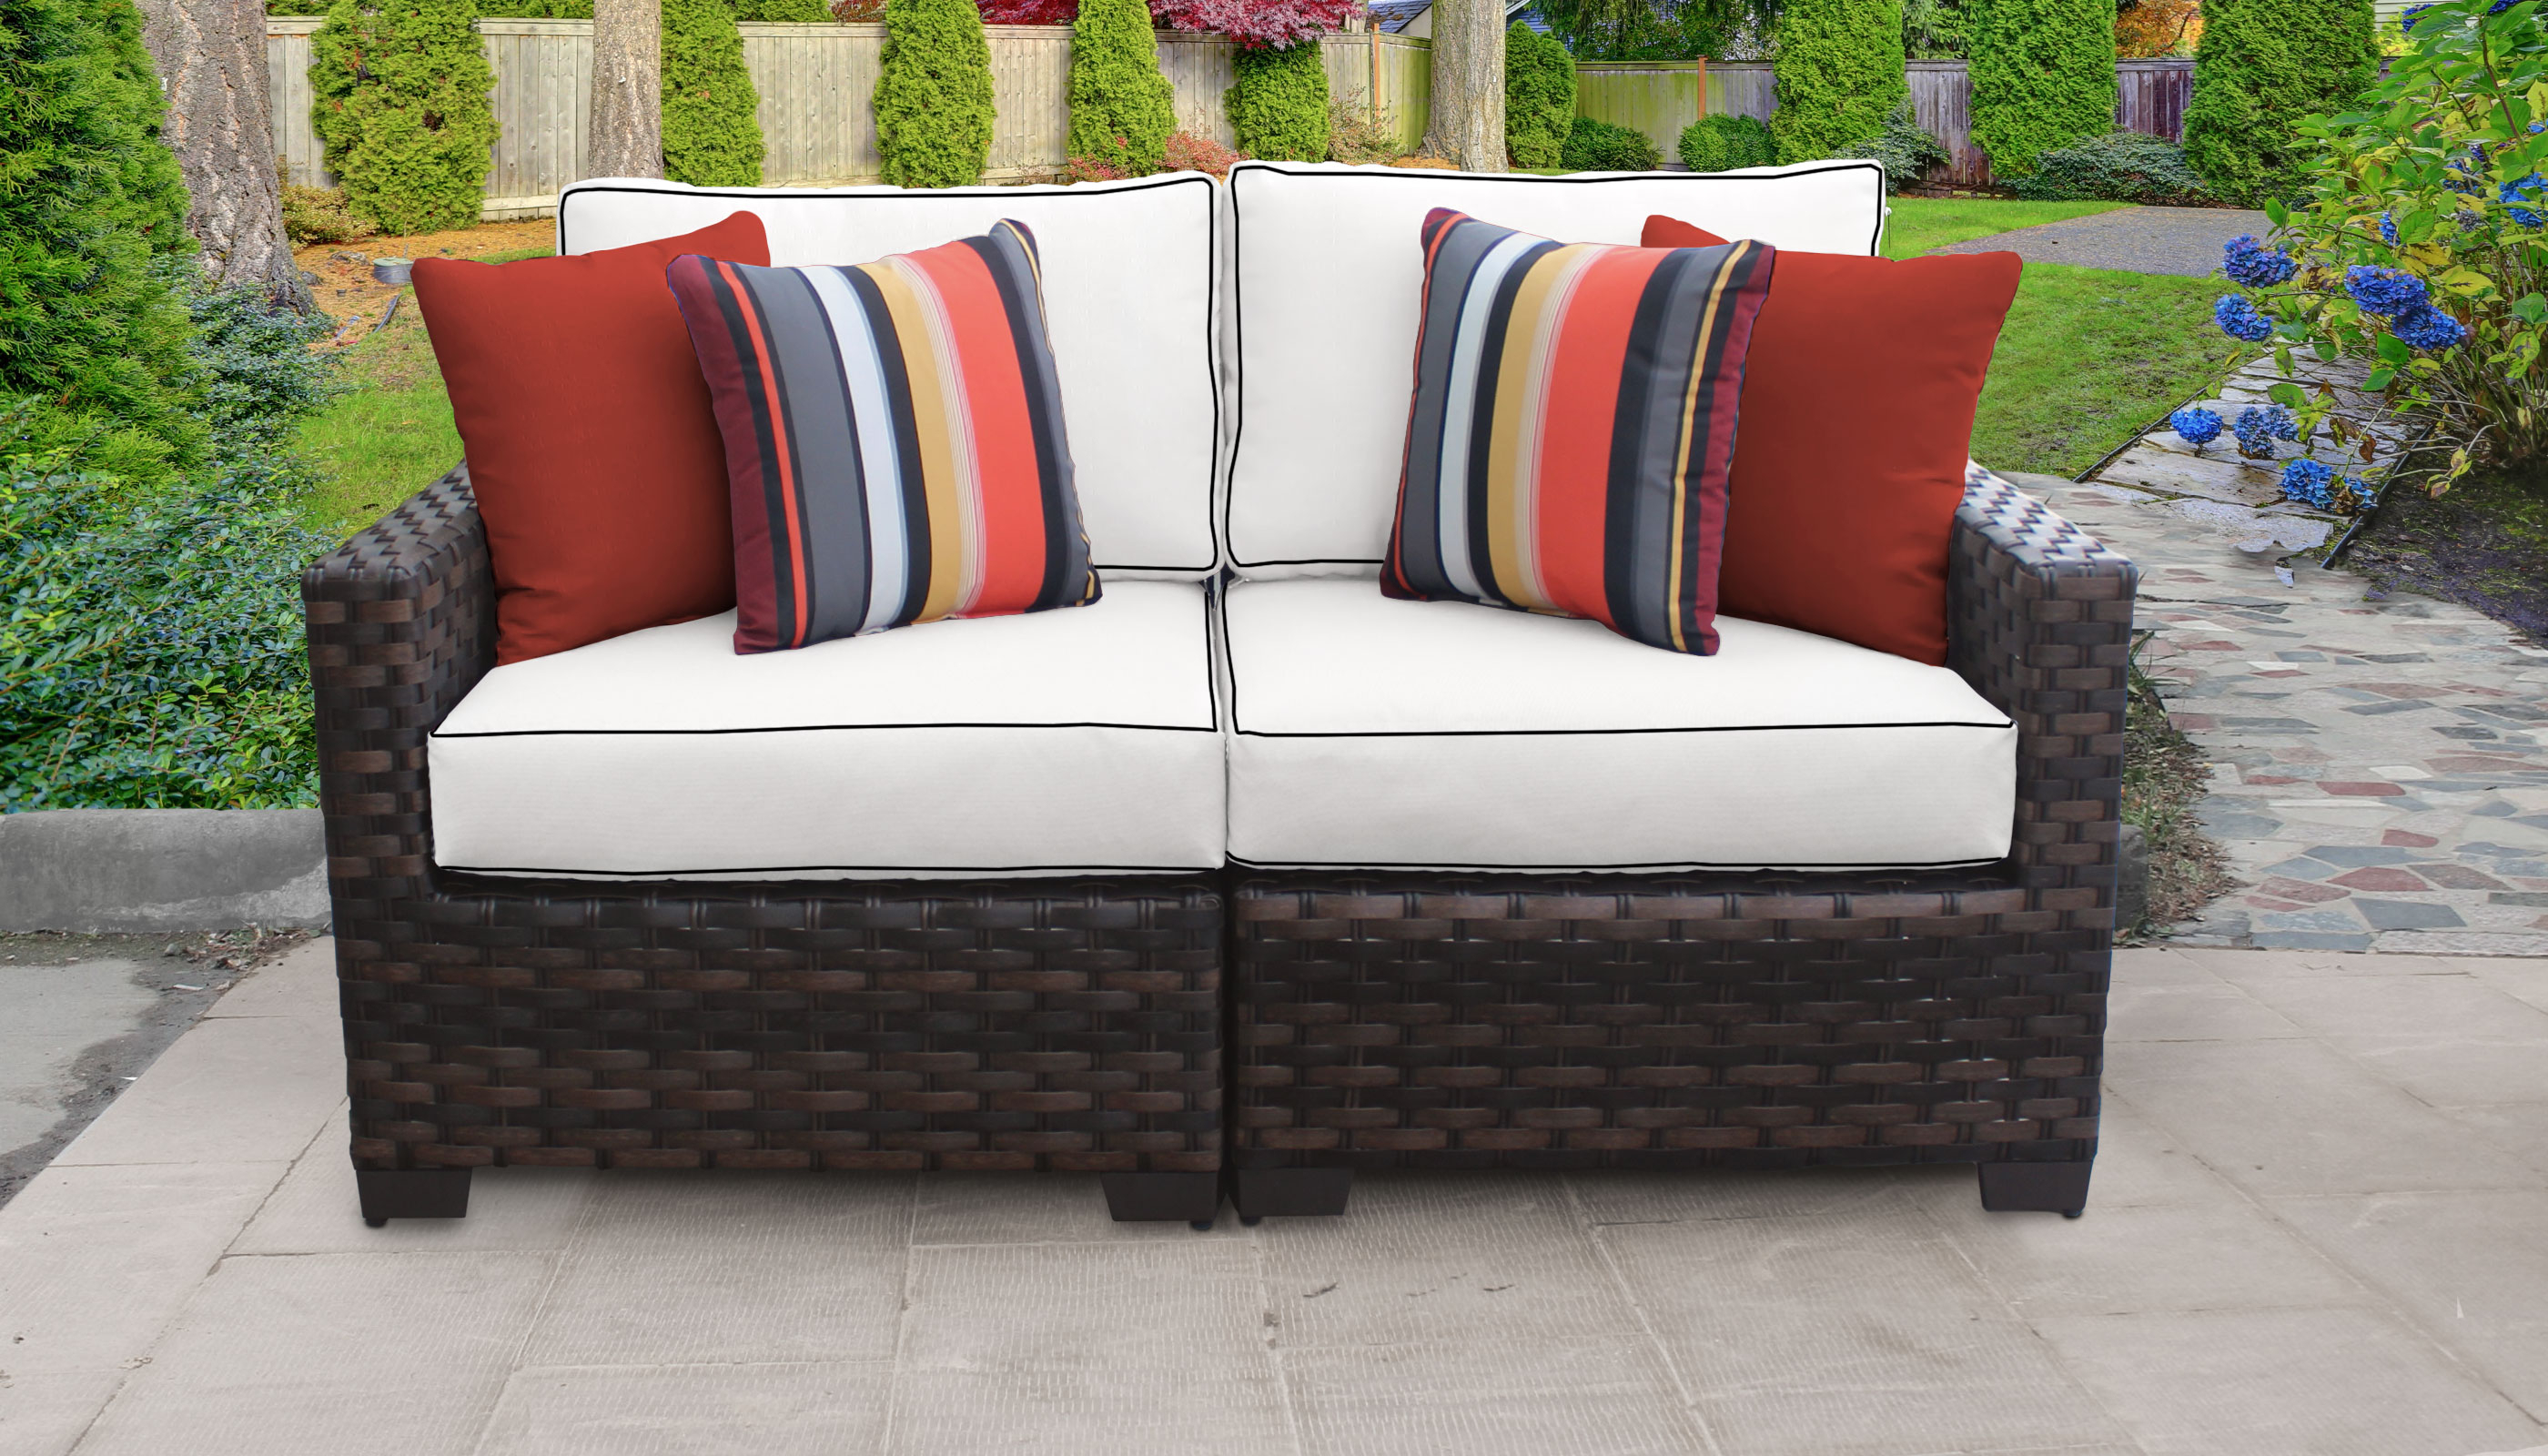 Latest River 2 Piece Outdoor Wicker Patio Furniture Set 02a For Oreland Patio Sofas With Cushions (View 16 of 20)